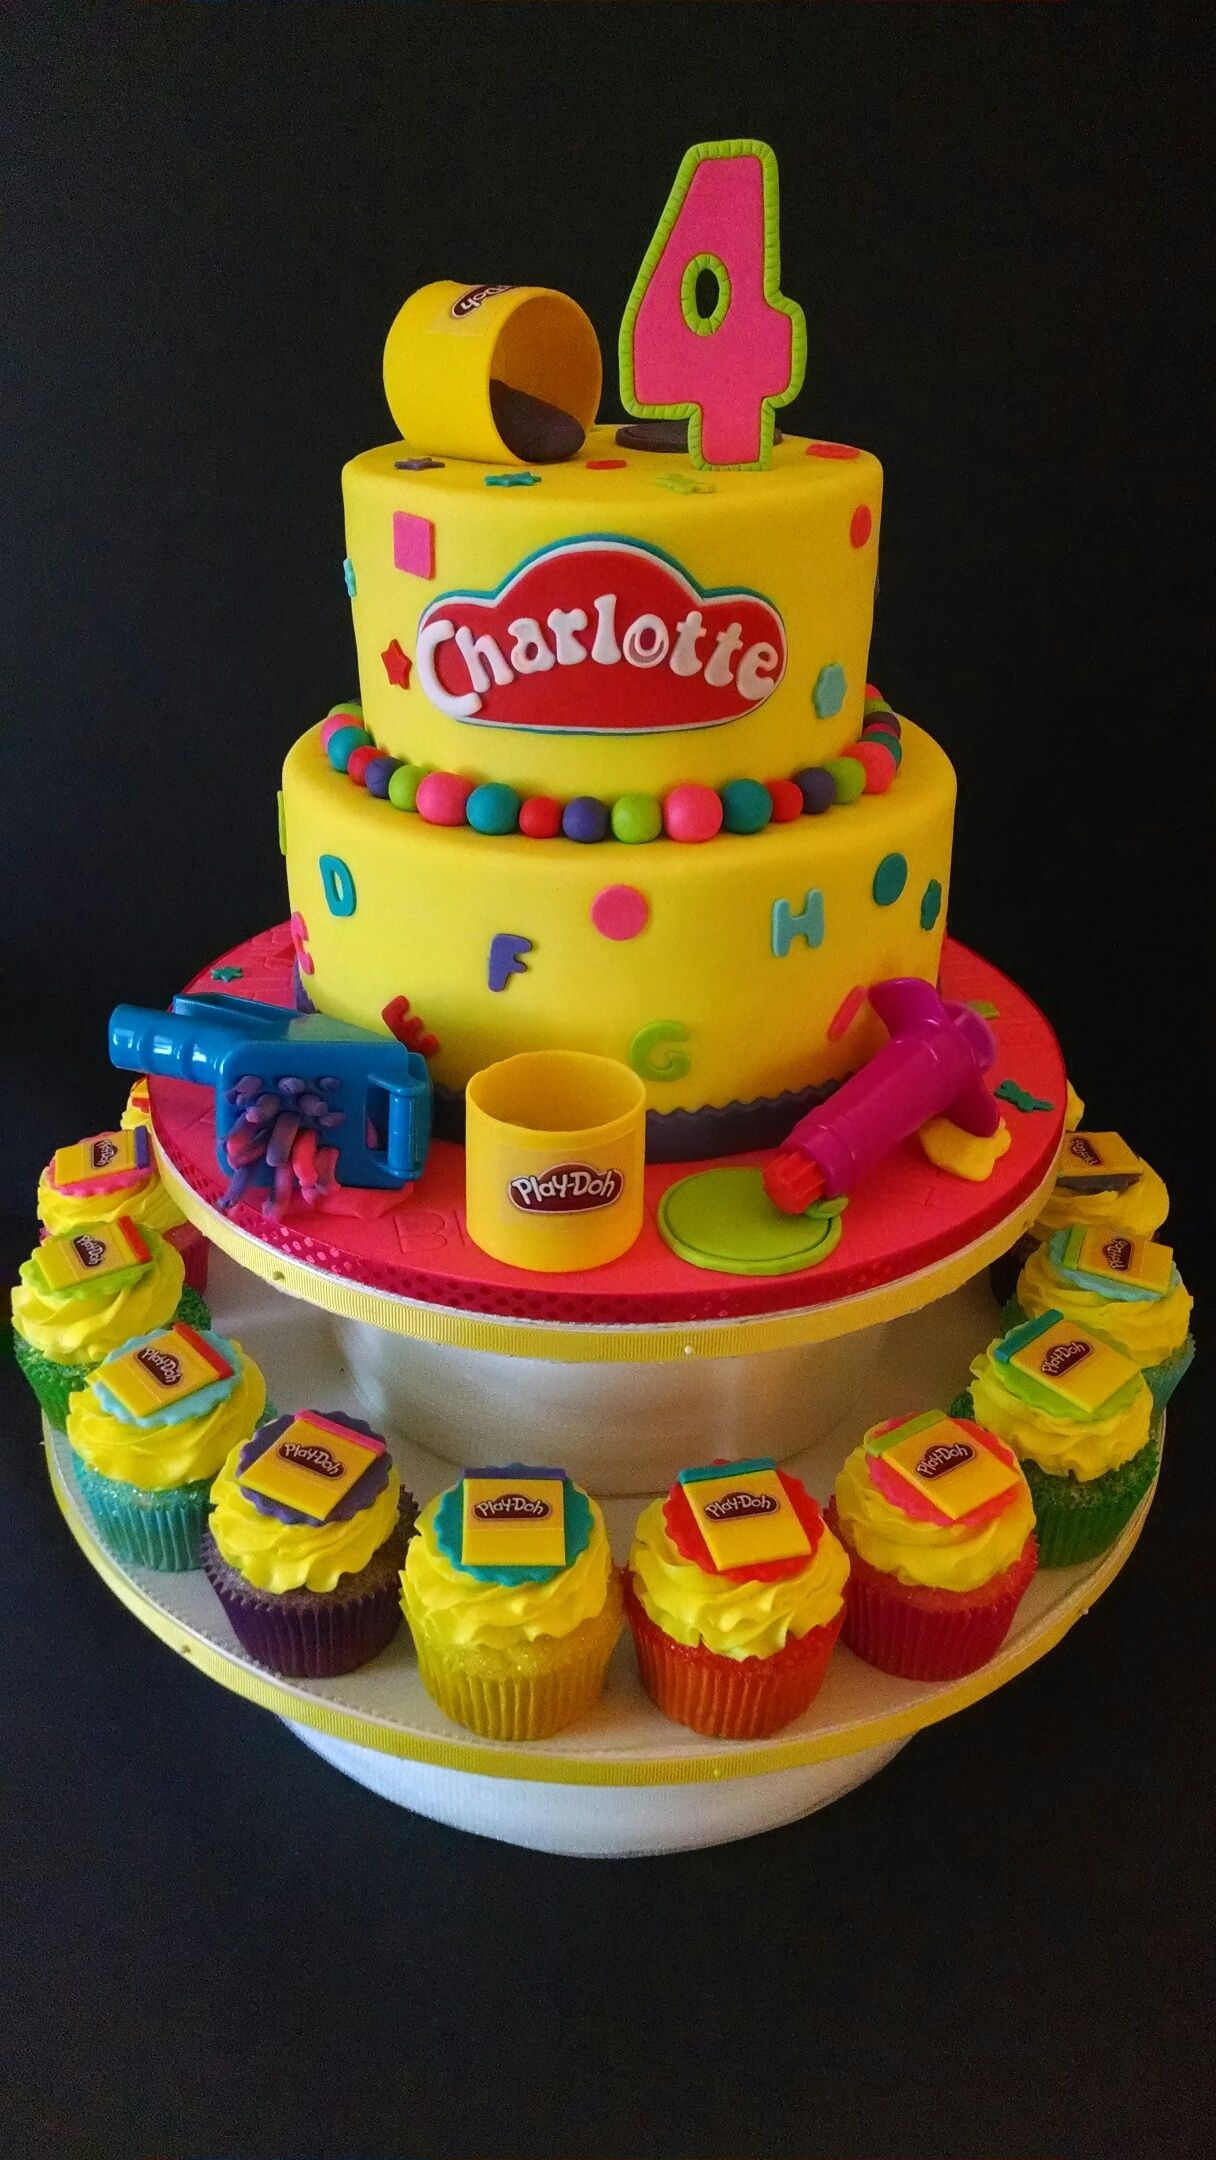 play doh themed birthday the house of cakes pinterest play doh plays and birthdays. Black Bedroom Furniture Sets. Home Design Ideas